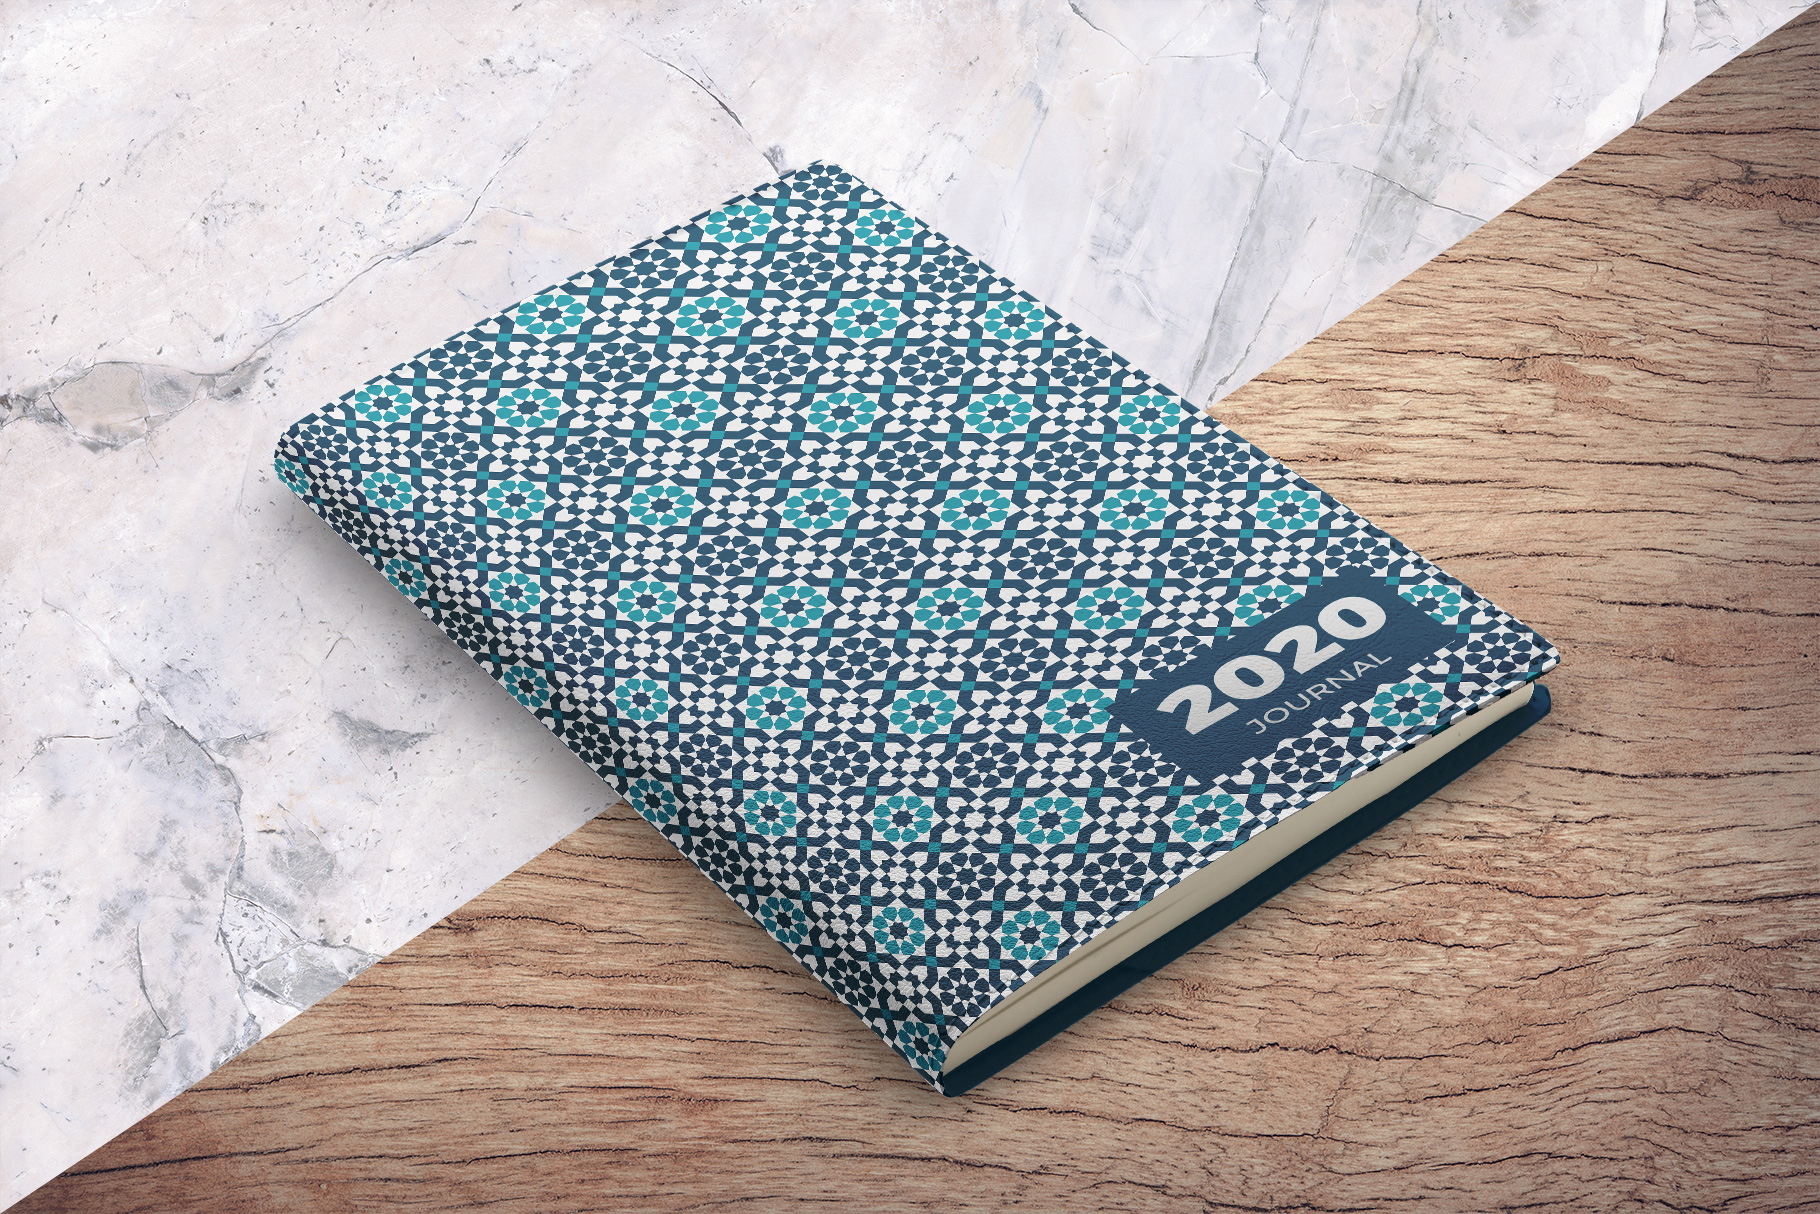 background option of the leather bind journal cover mockup